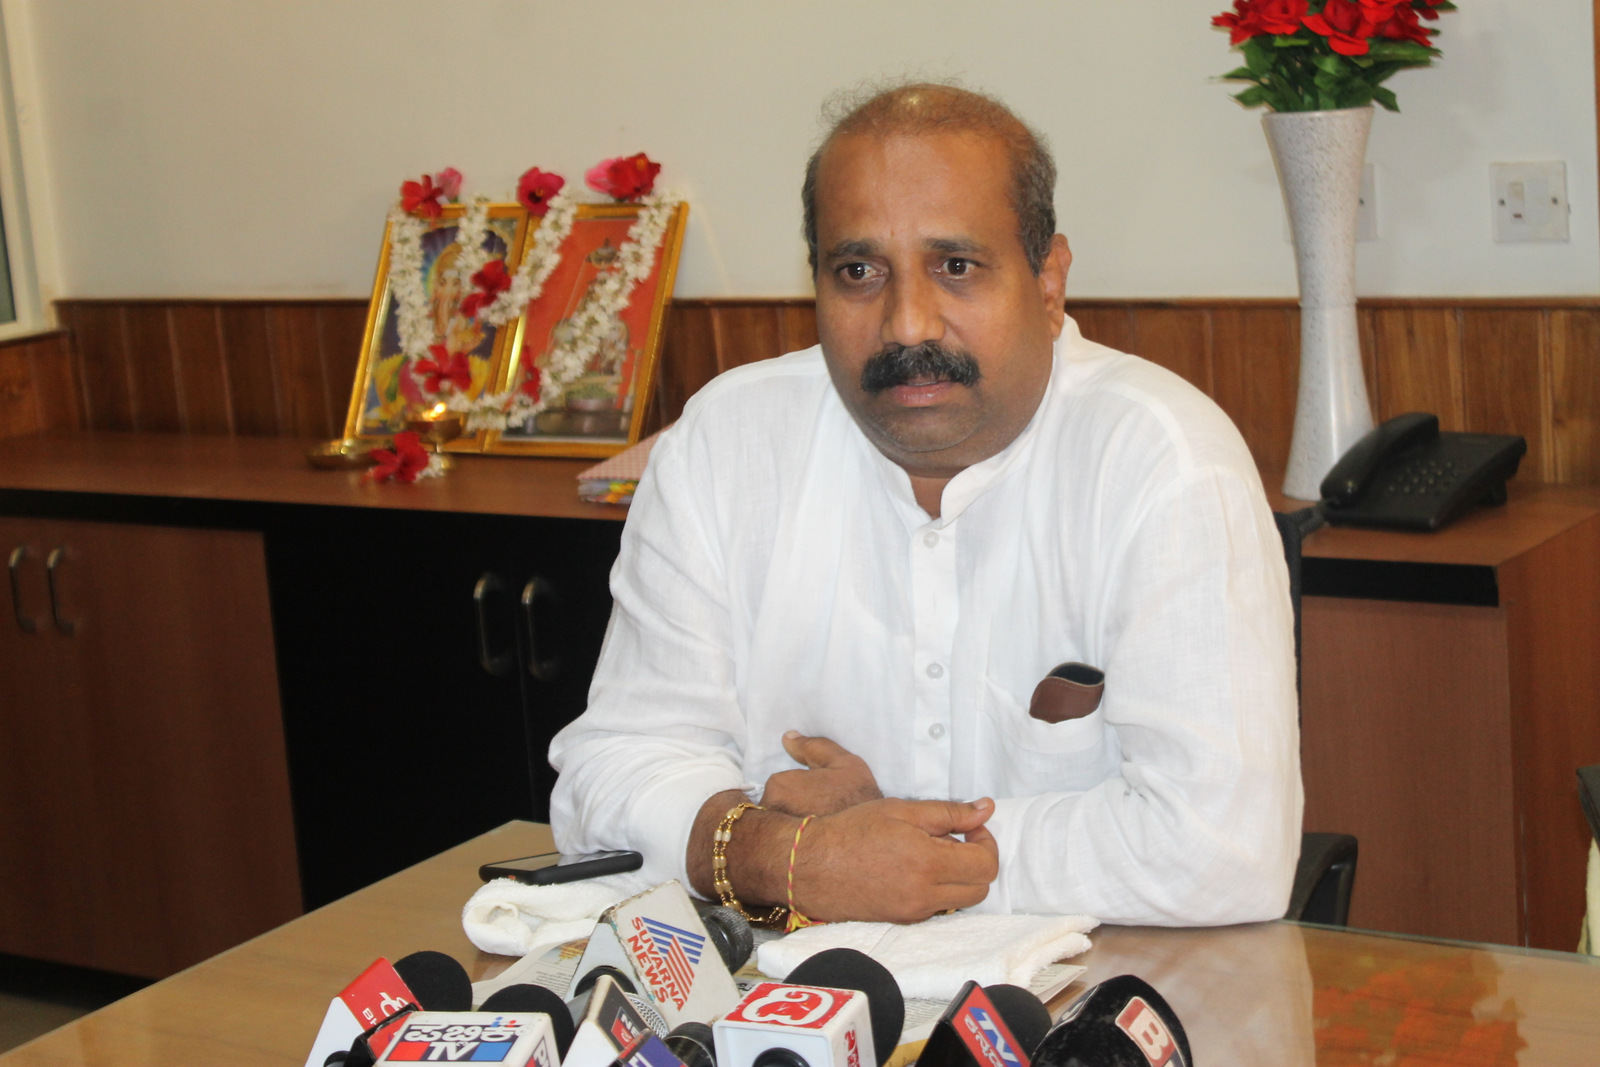 No connection between Madhwaraj's and our housing scheme - Raghupathy Bhat MLA